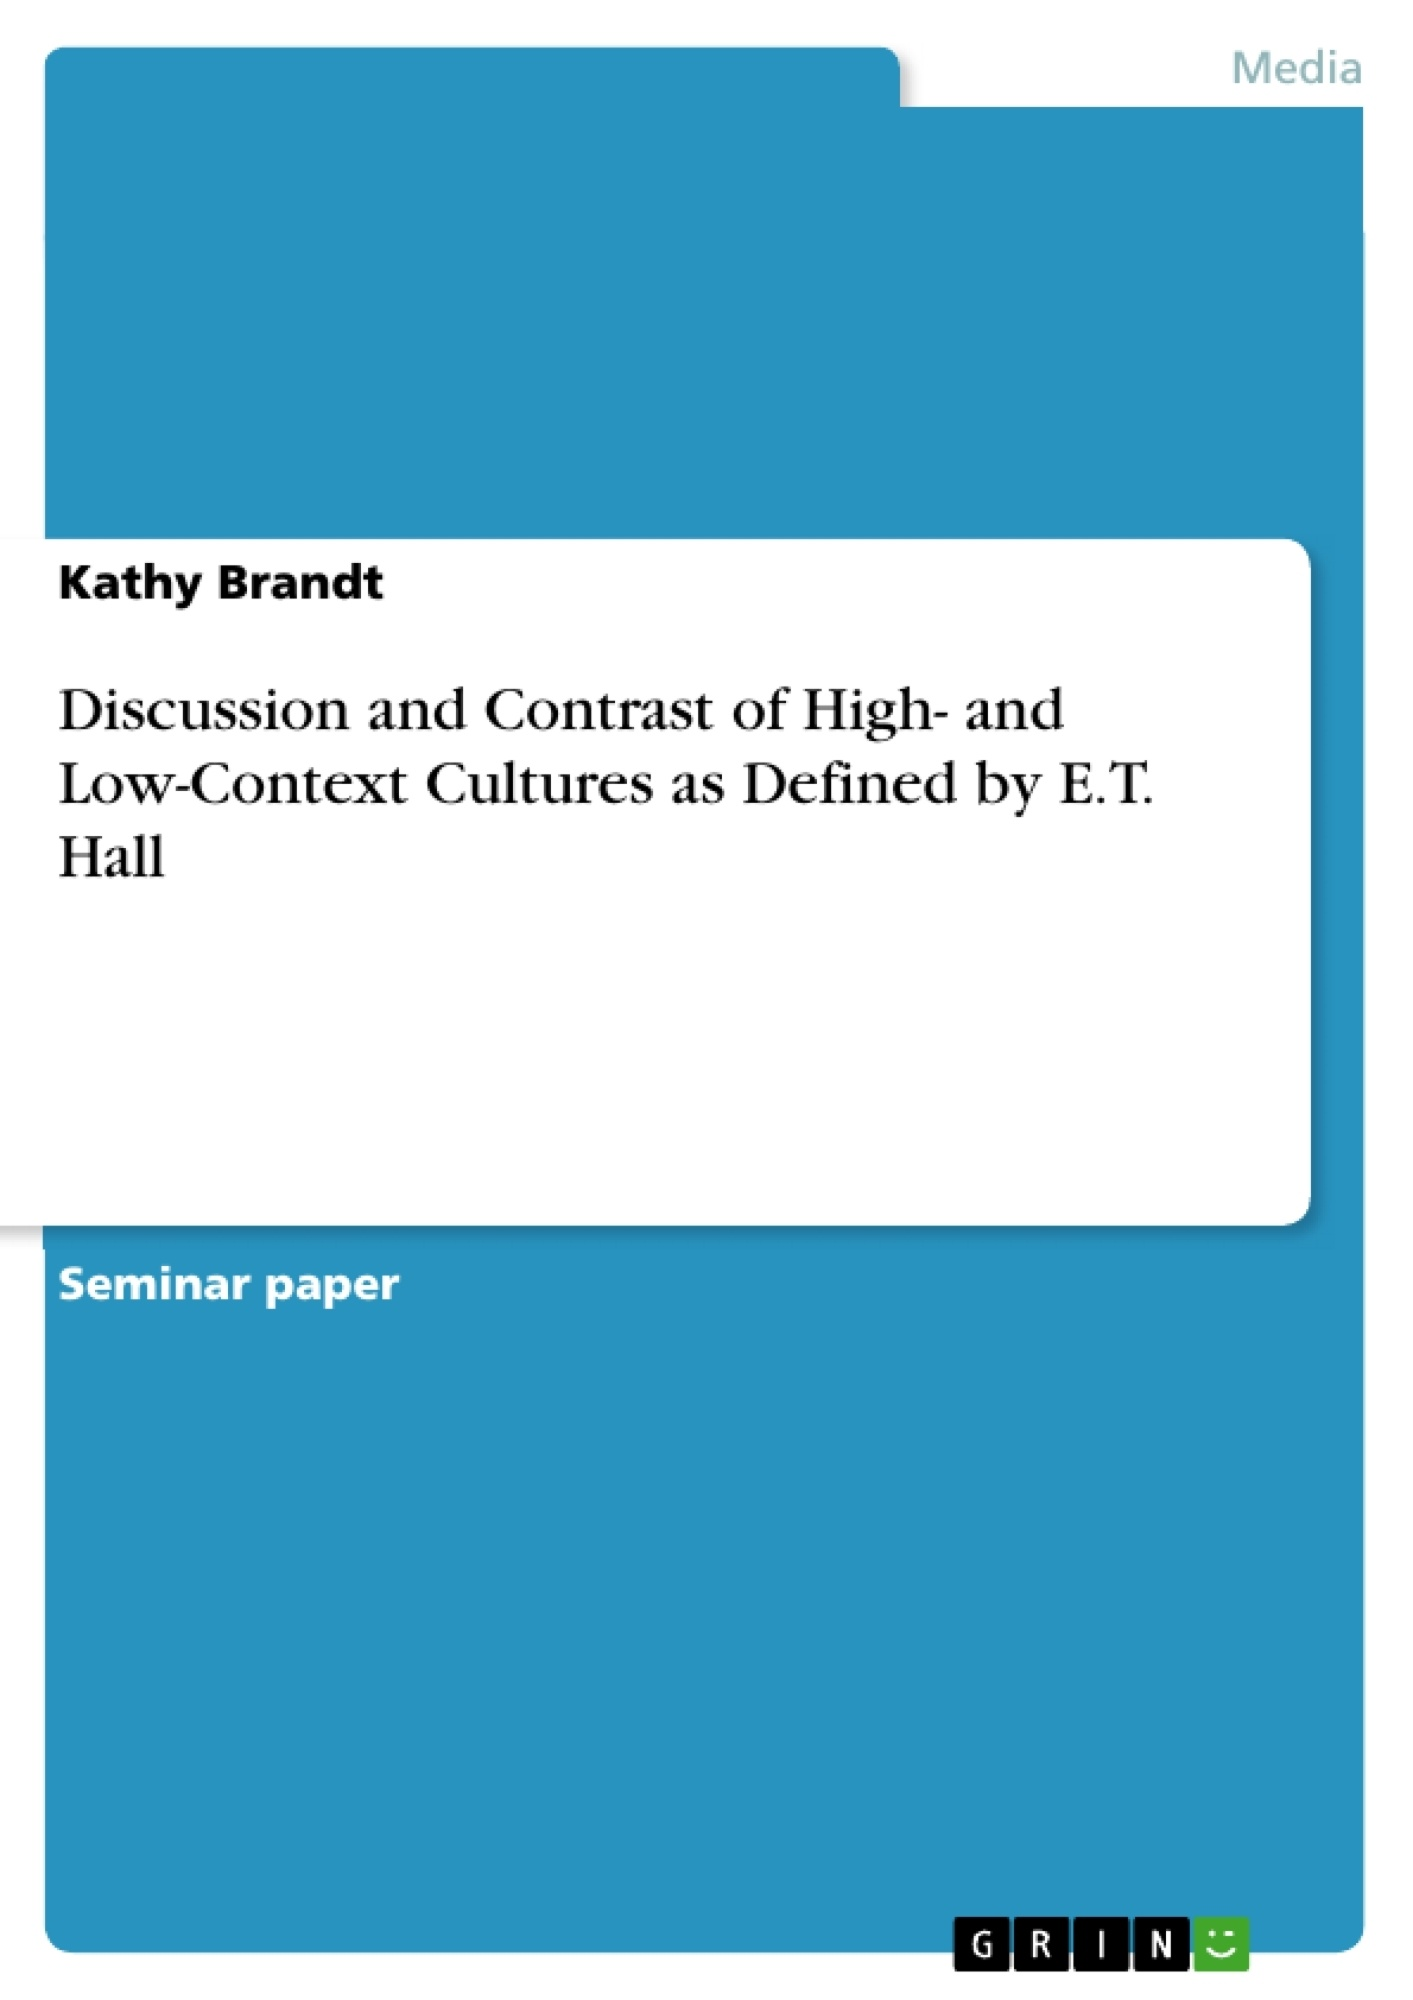 Title: Discussion and Contrast of High- and Low-Context Cultures as Defined by E.T. Hall